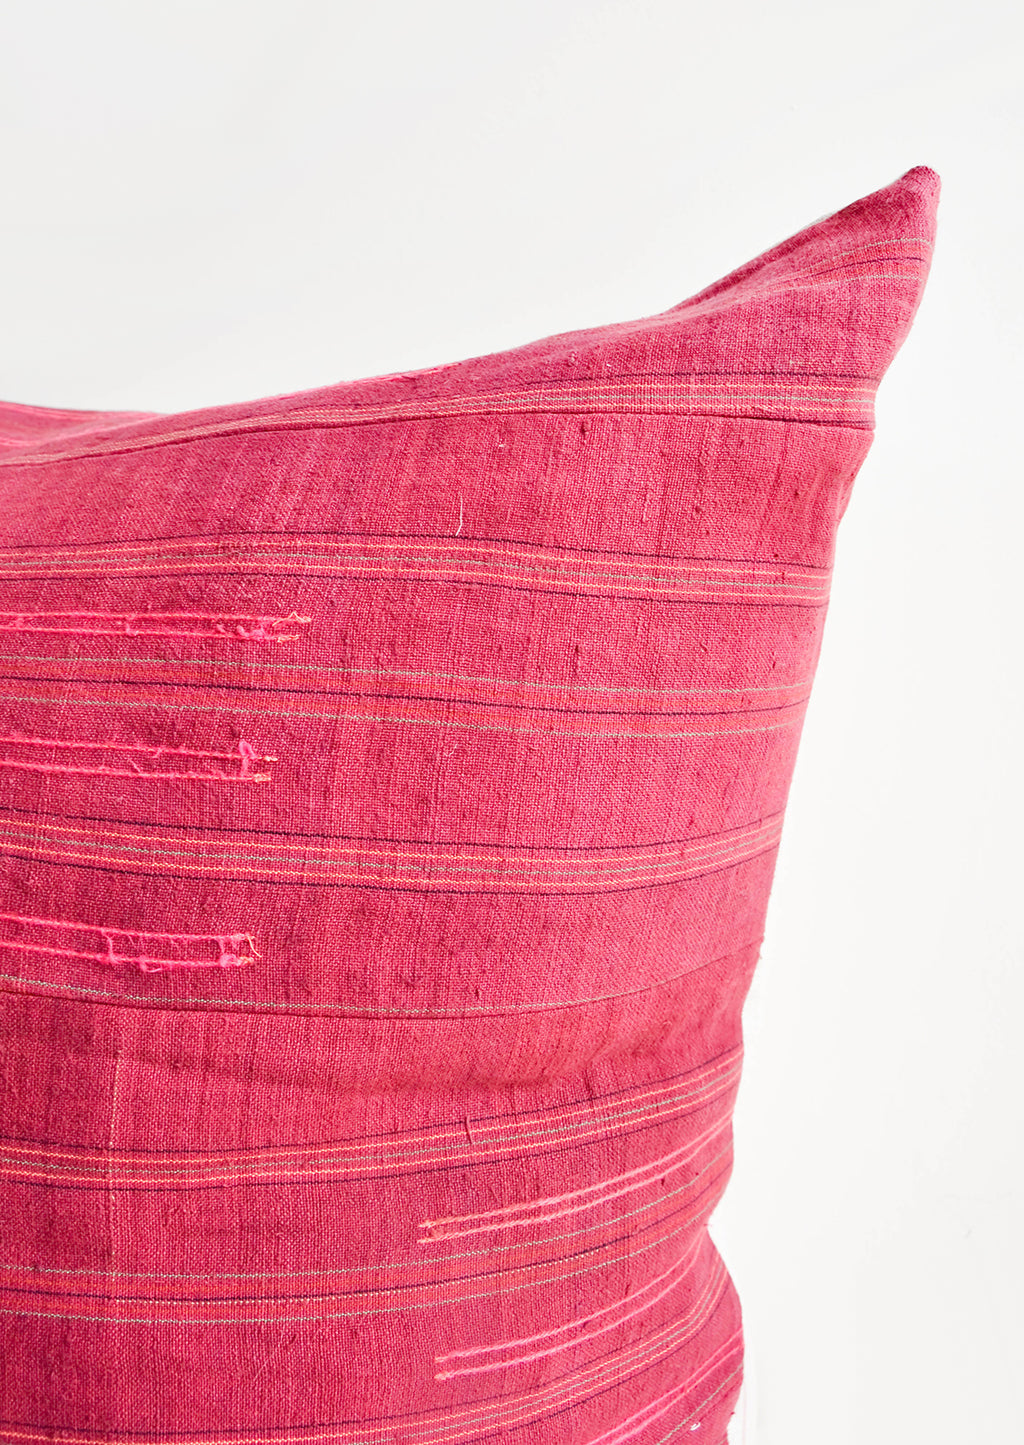 2: Detail of Wine Colored Recycled Thai Fabric Square Throw Pillow with Hot Pink Embroidery Detailing